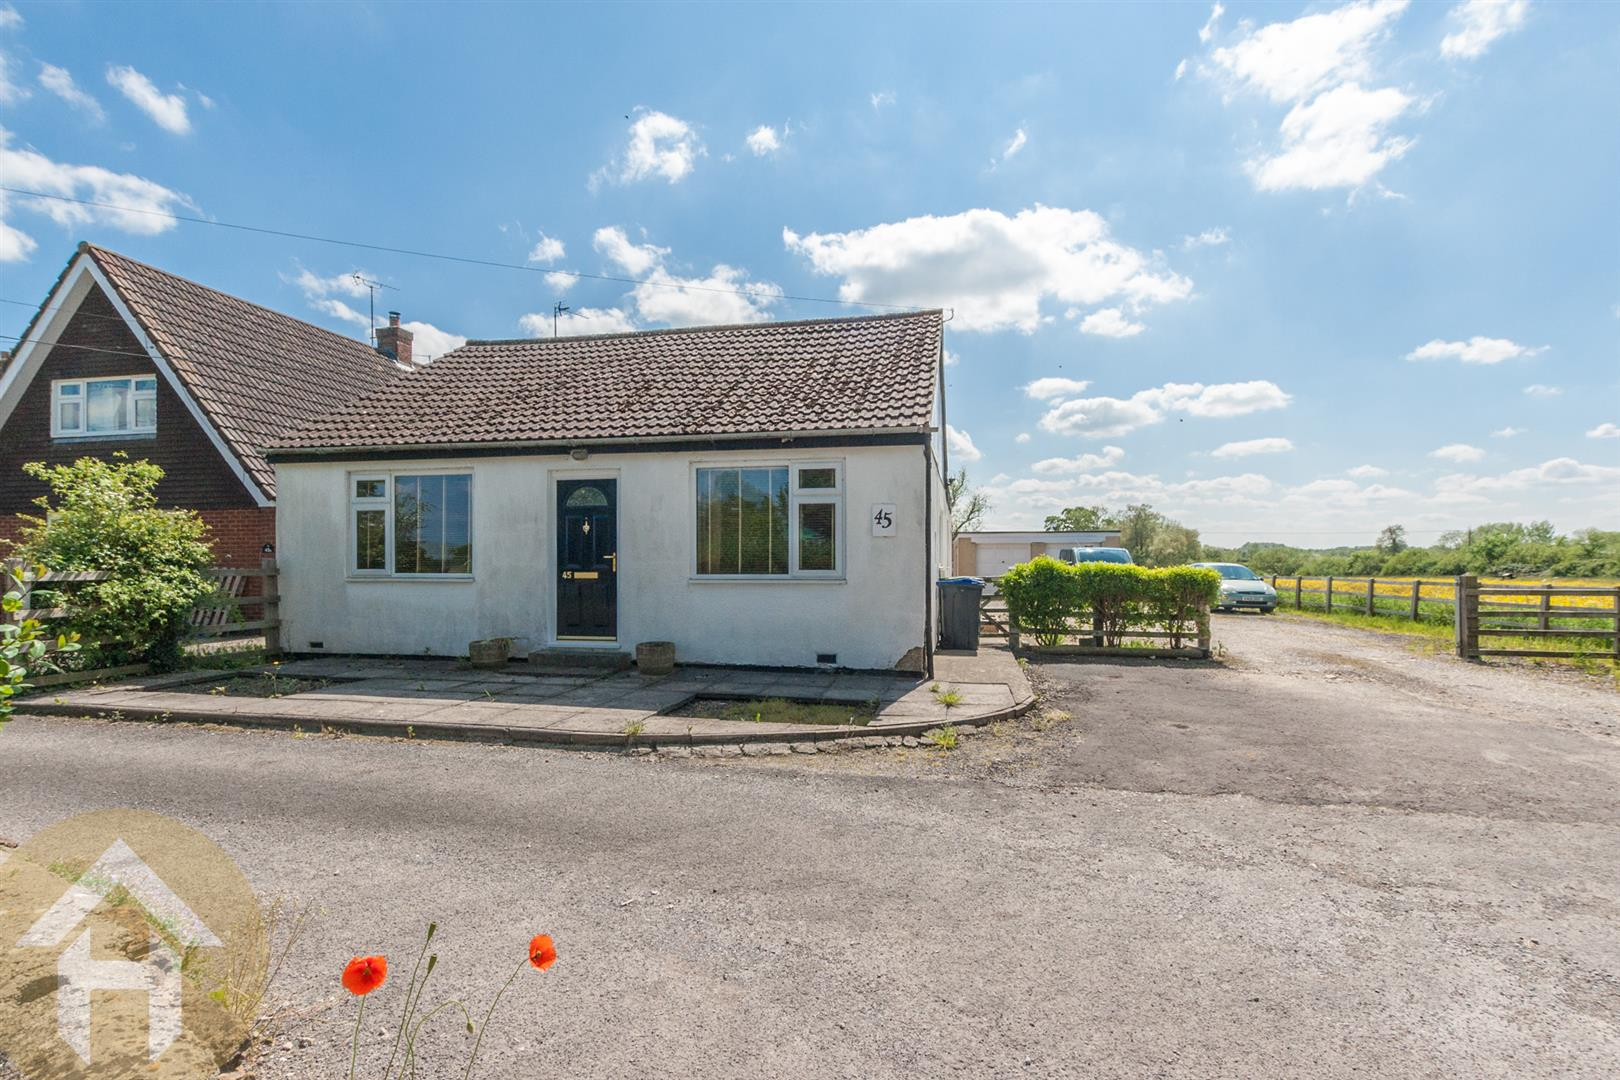 4 Bedrooms Detached Bungalow for sale in Marlborough Road, Royal Wootton Bassett